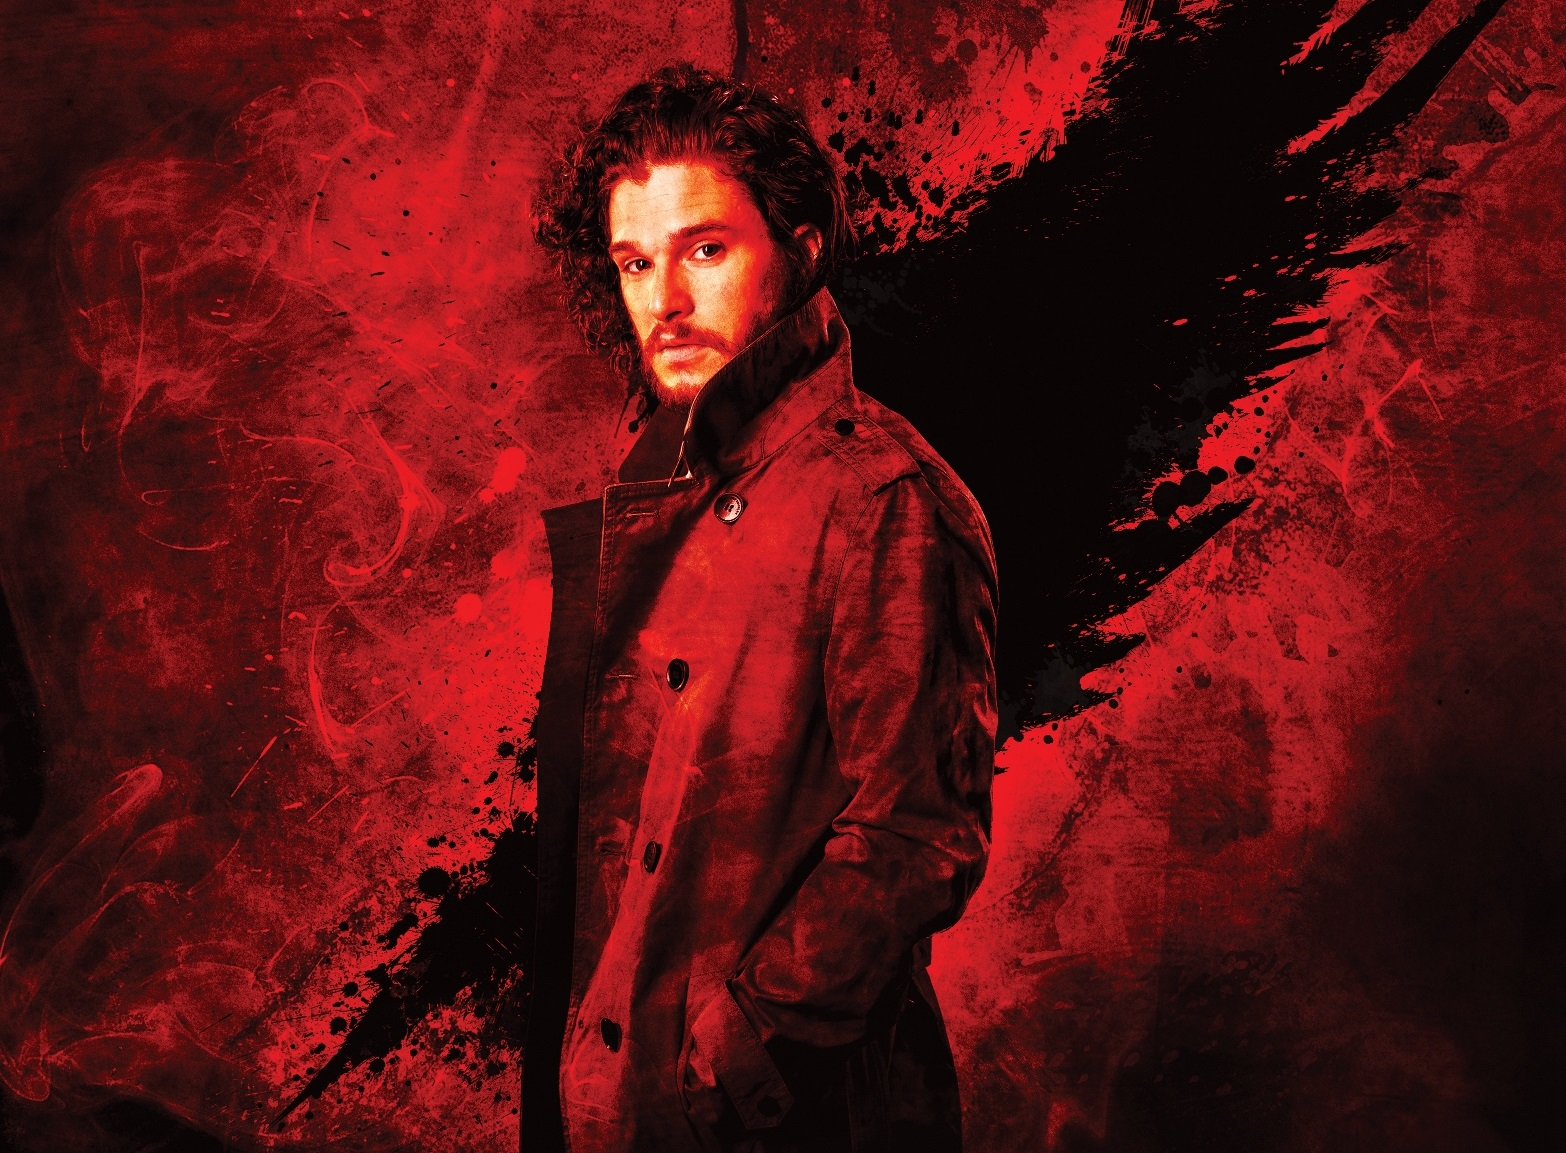 pride of satan and dr faustus Free essay: christopher marlowe's dr faustus - is dr faustus crazy or sane christopher marlowe's play, dr faustus, is the story of the struggle of one.